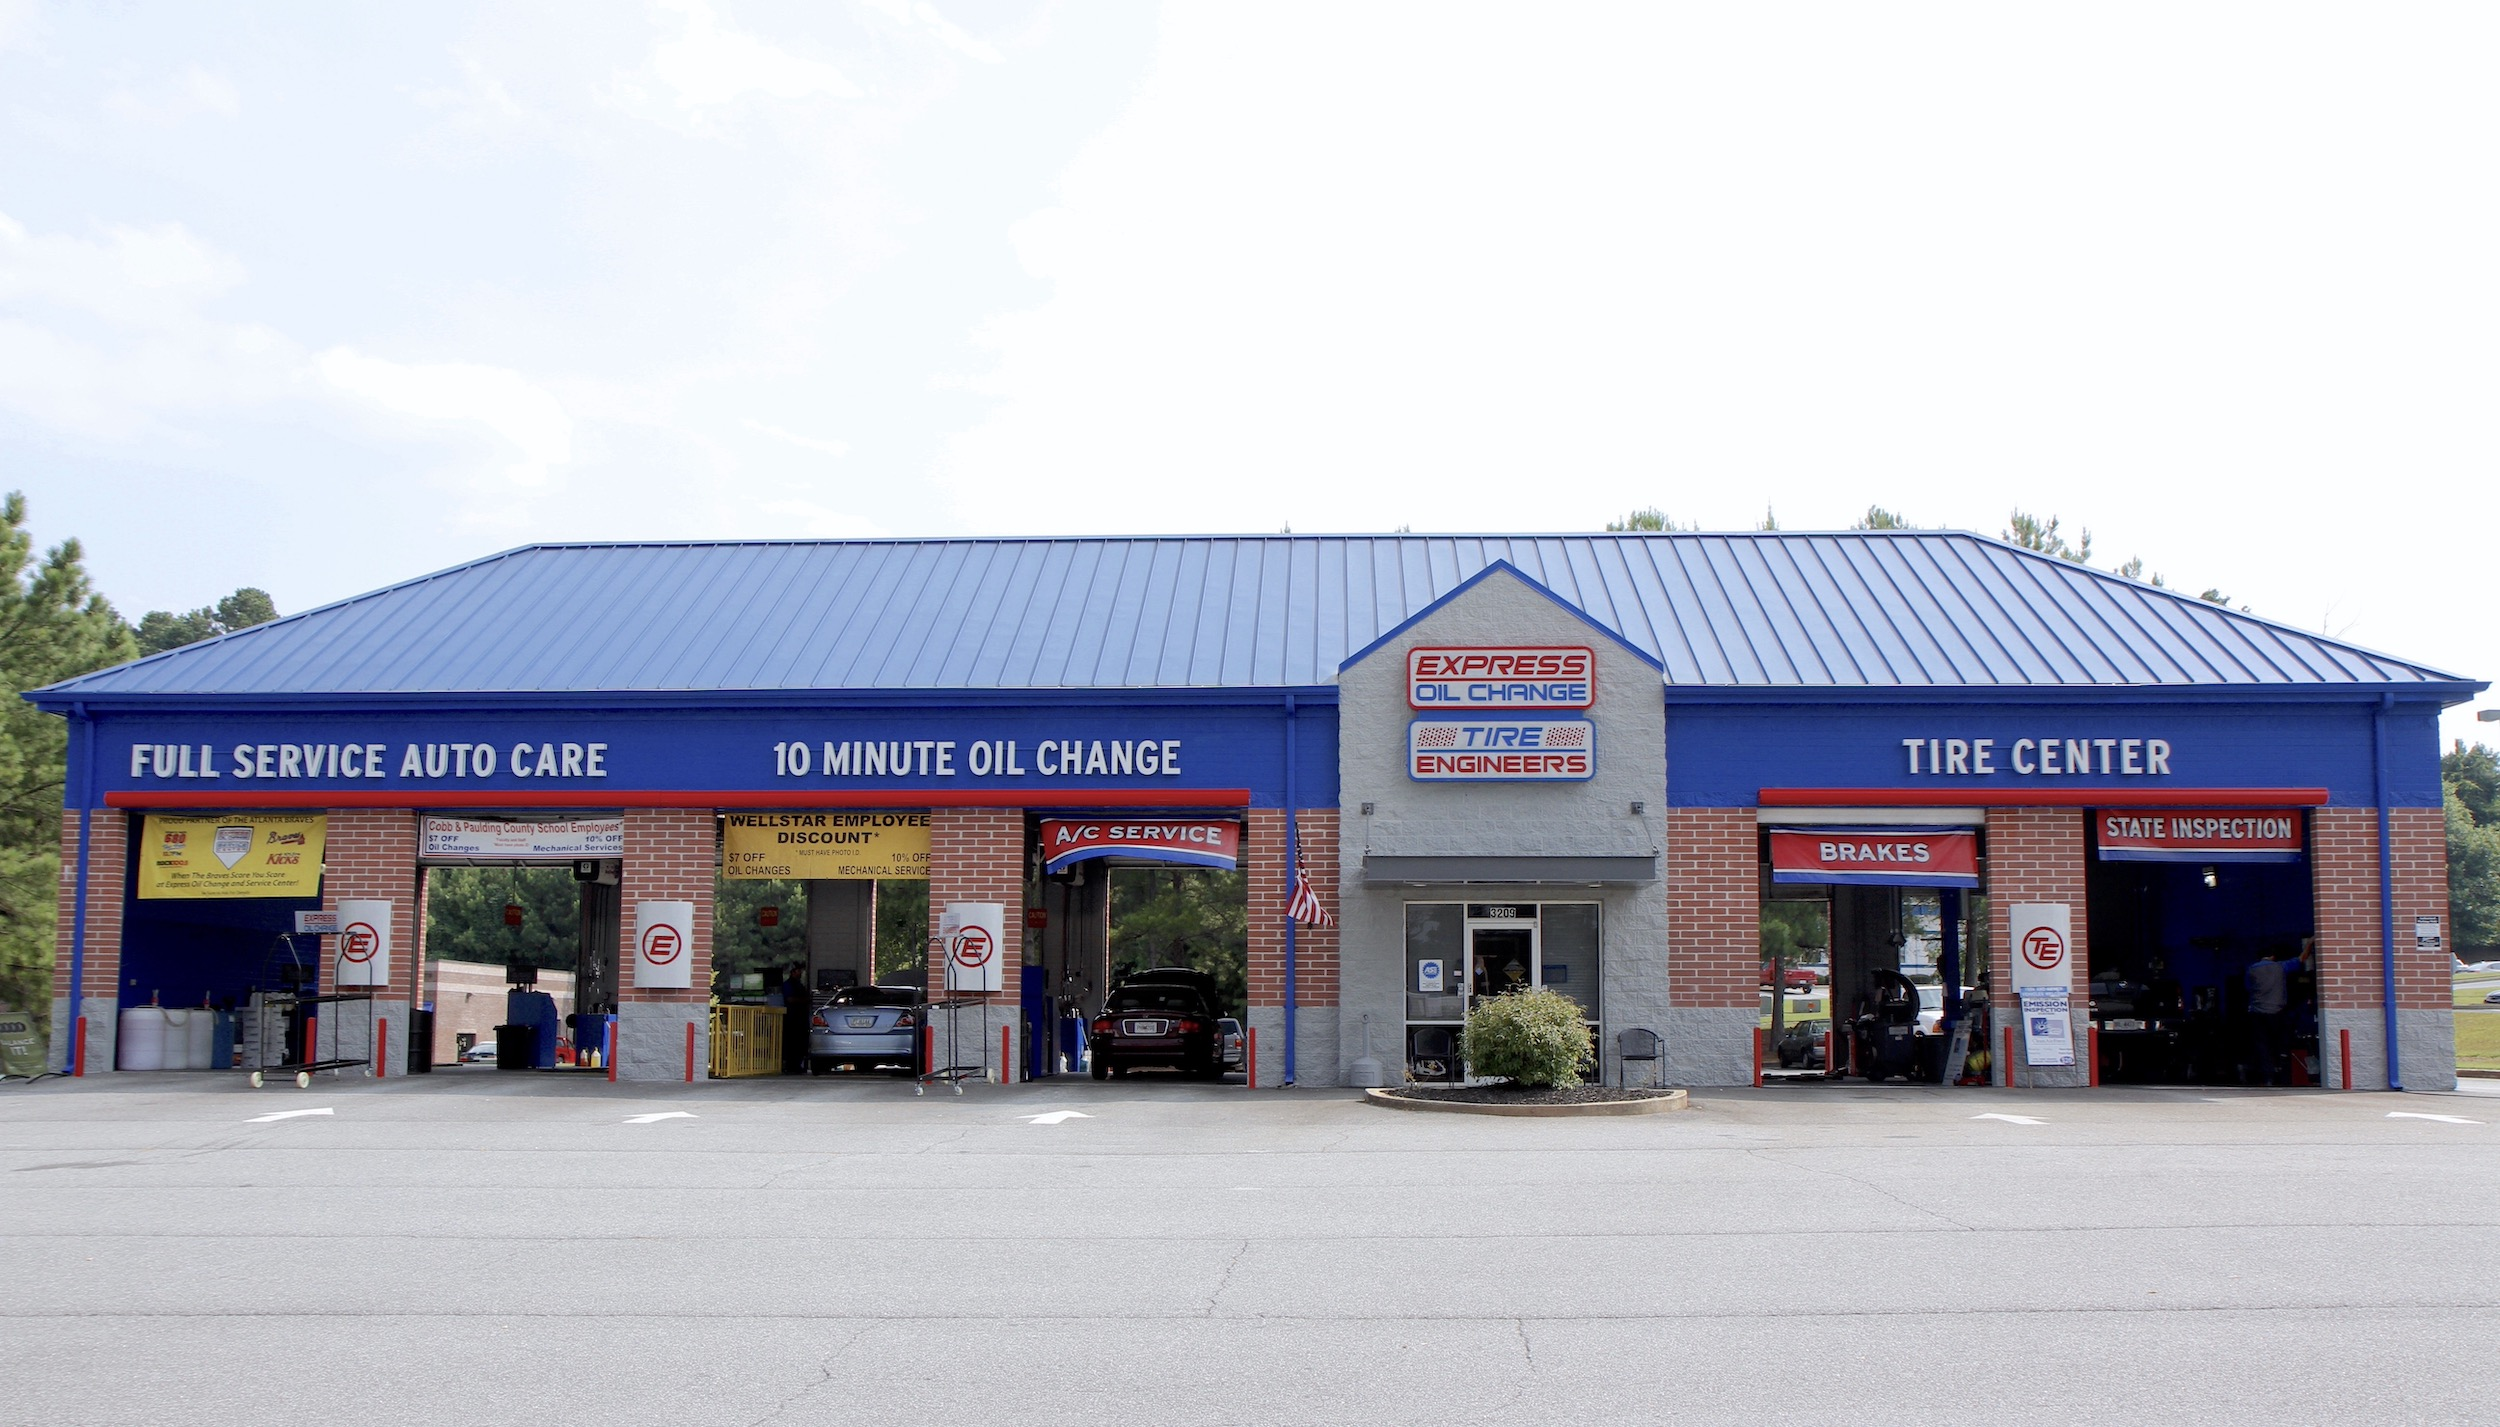 Express Oil Change & Tire Engineers at Acworth, GA store